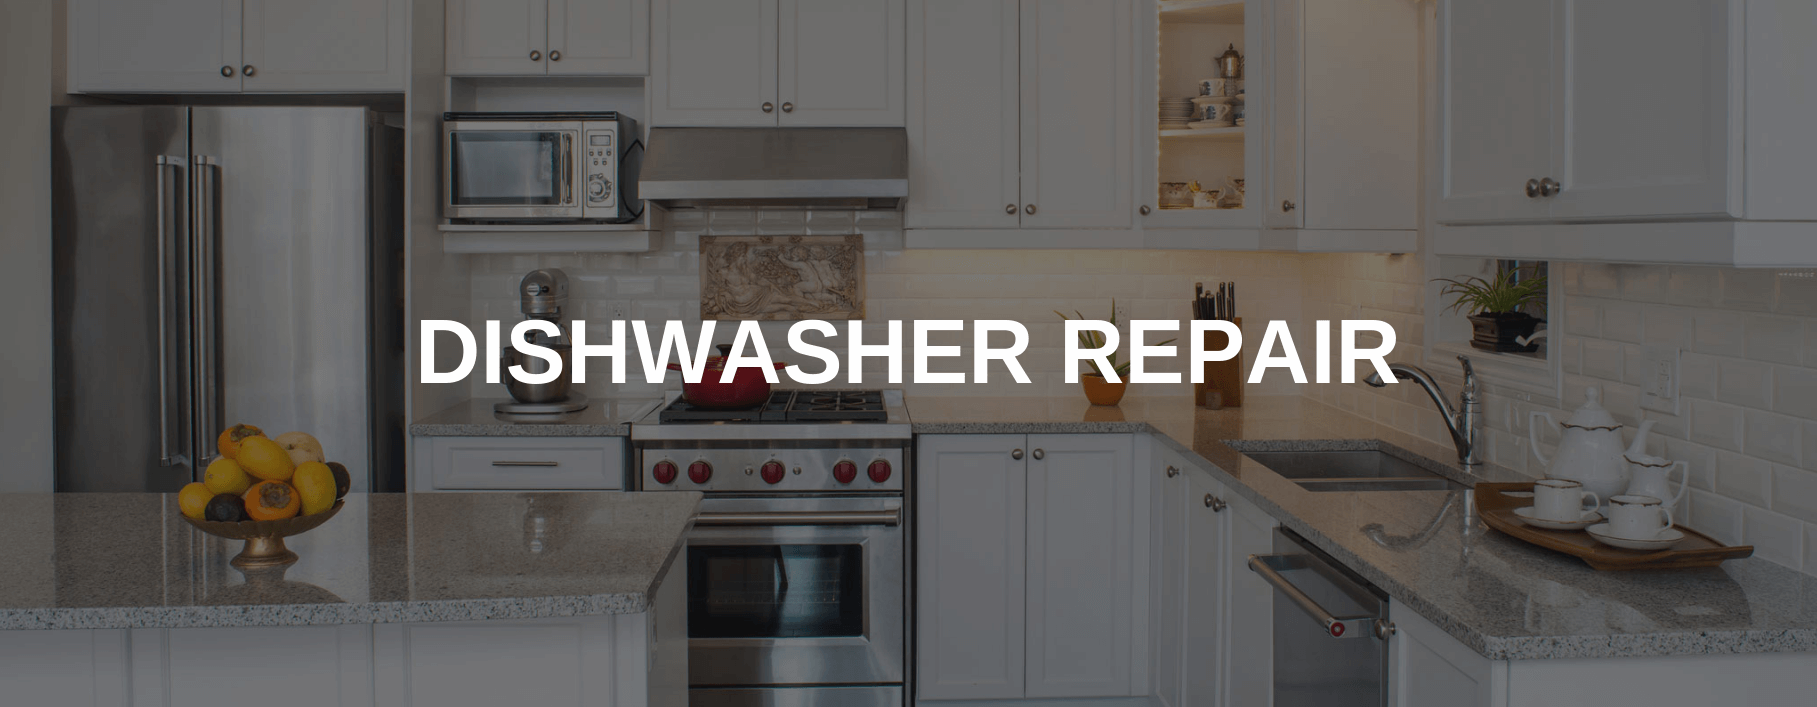 dishwasher repair silver spring